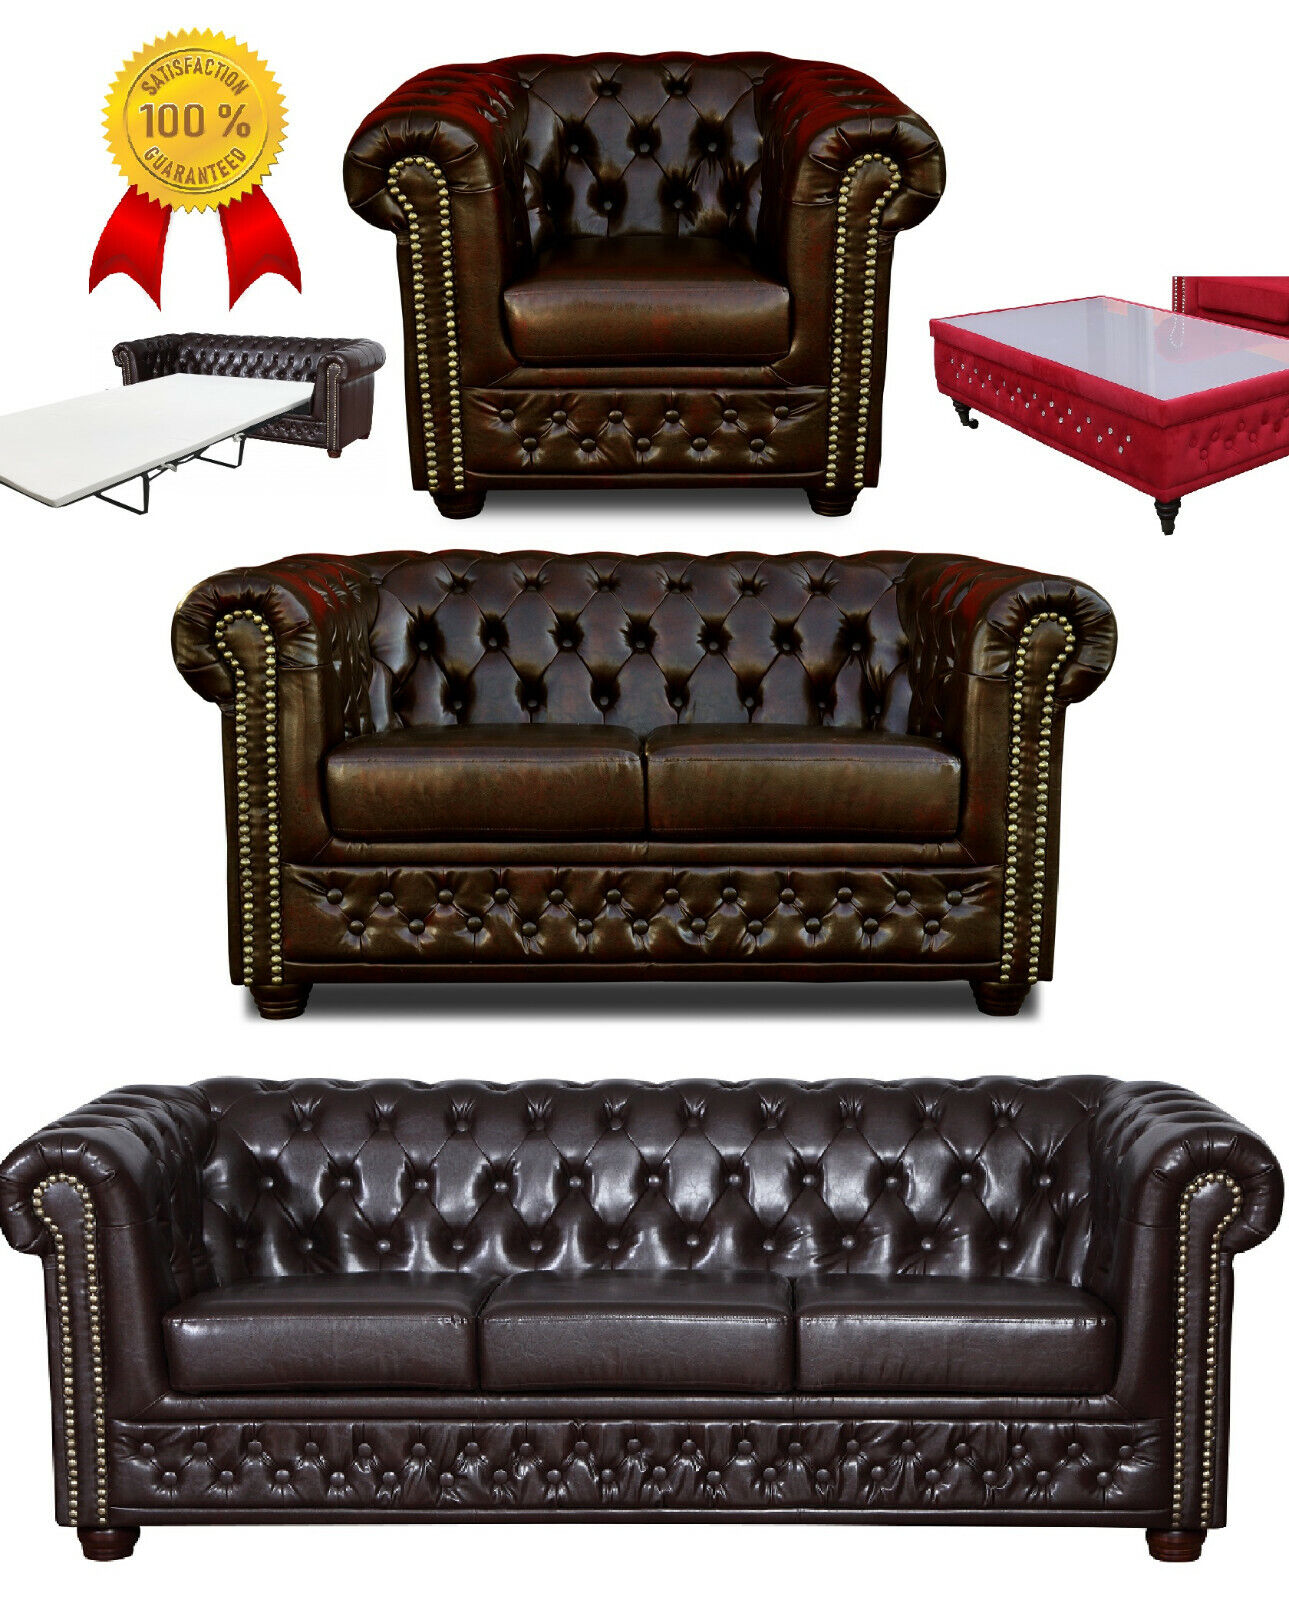 Chesterfield Sofa 3 + 2 Sitzer + Sessel + Hocker + Bett Dunkelbraun LederLook